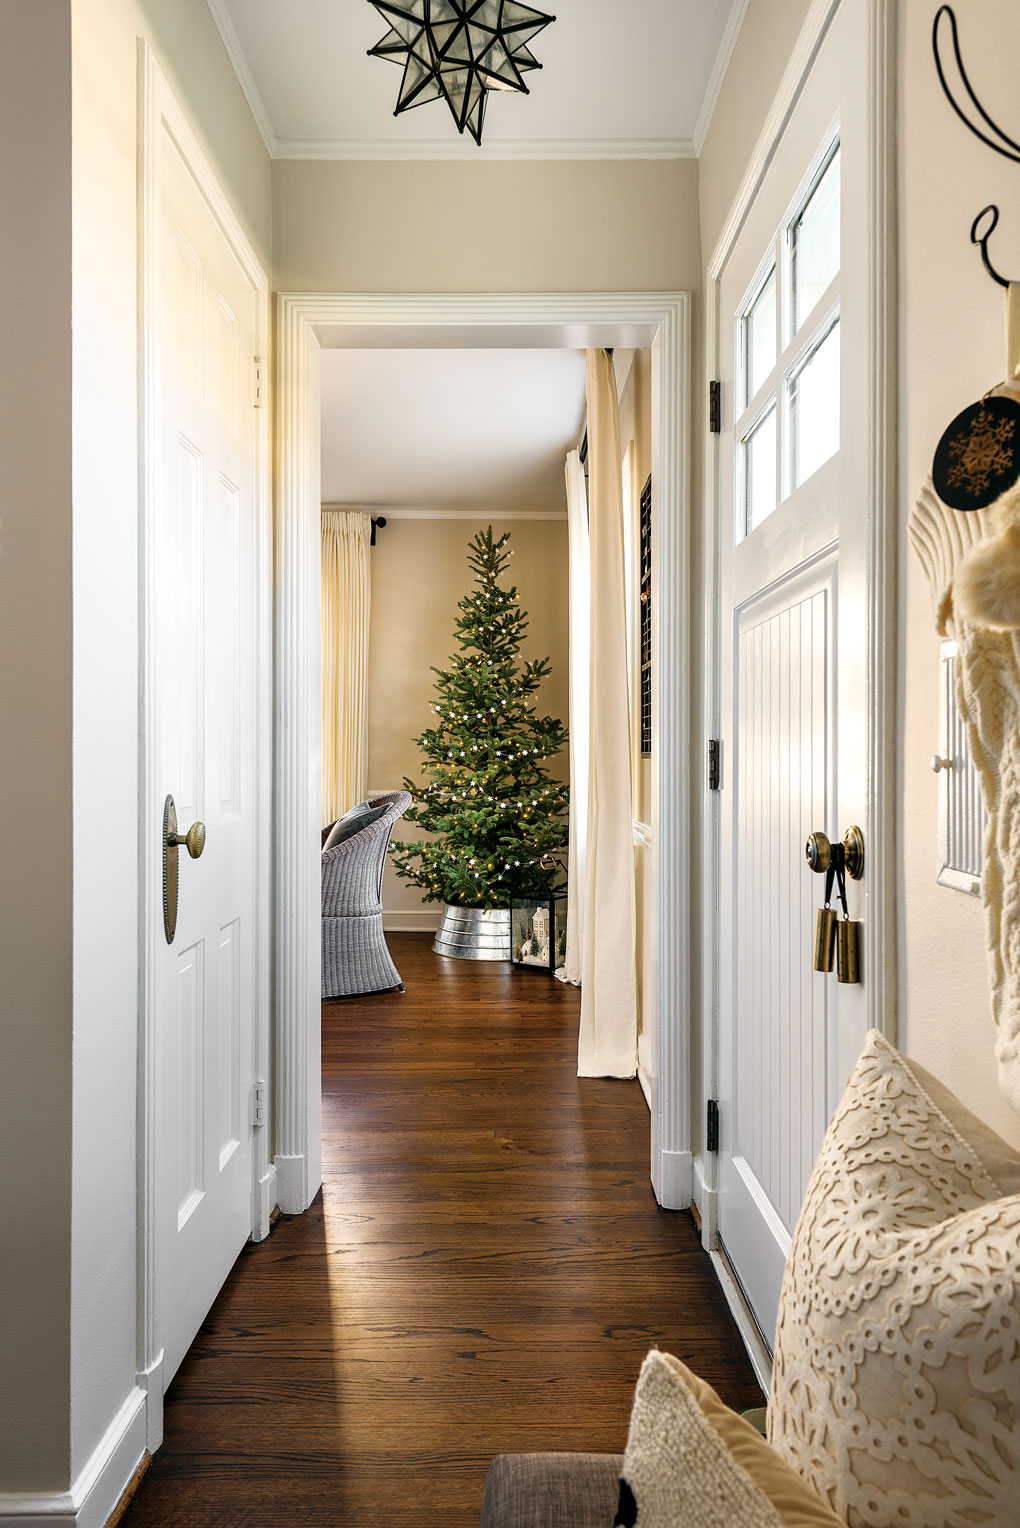 Farmhouse styled hallway looking down at the Christmas tree passed the front door.